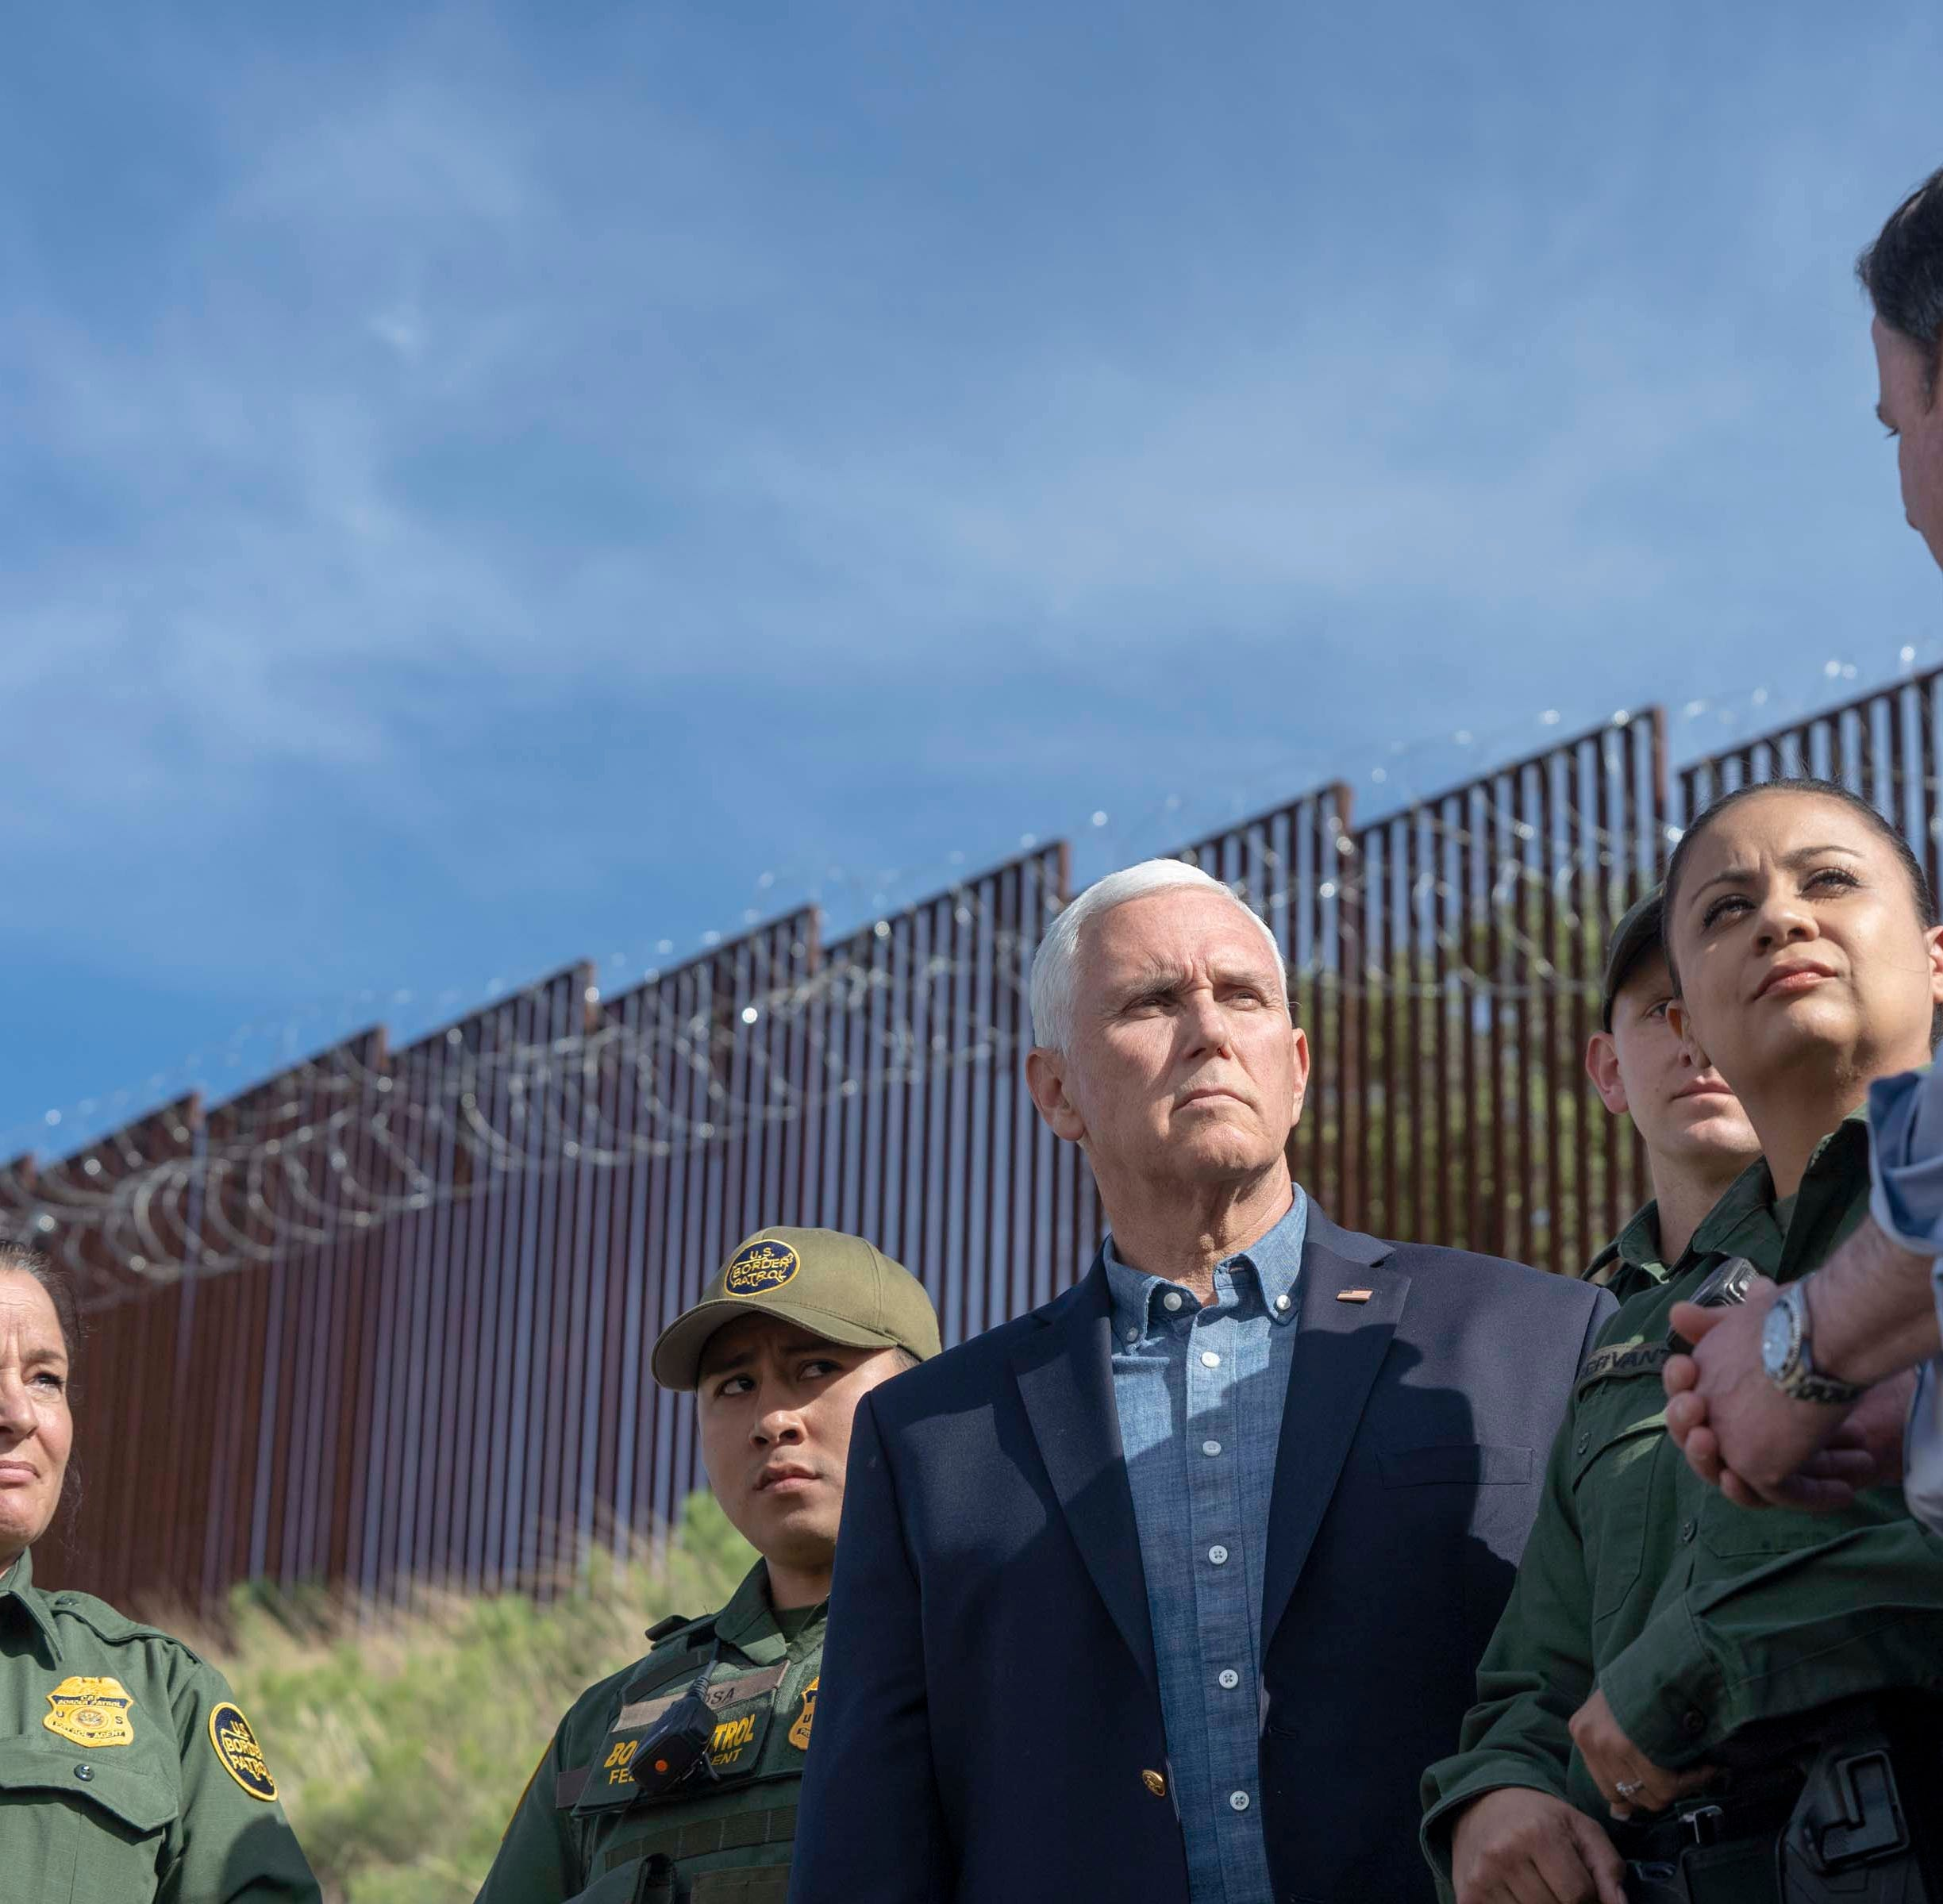 VP Mike Pence, Gov. Doug Ducey were guarded at the border from Democrats who live there